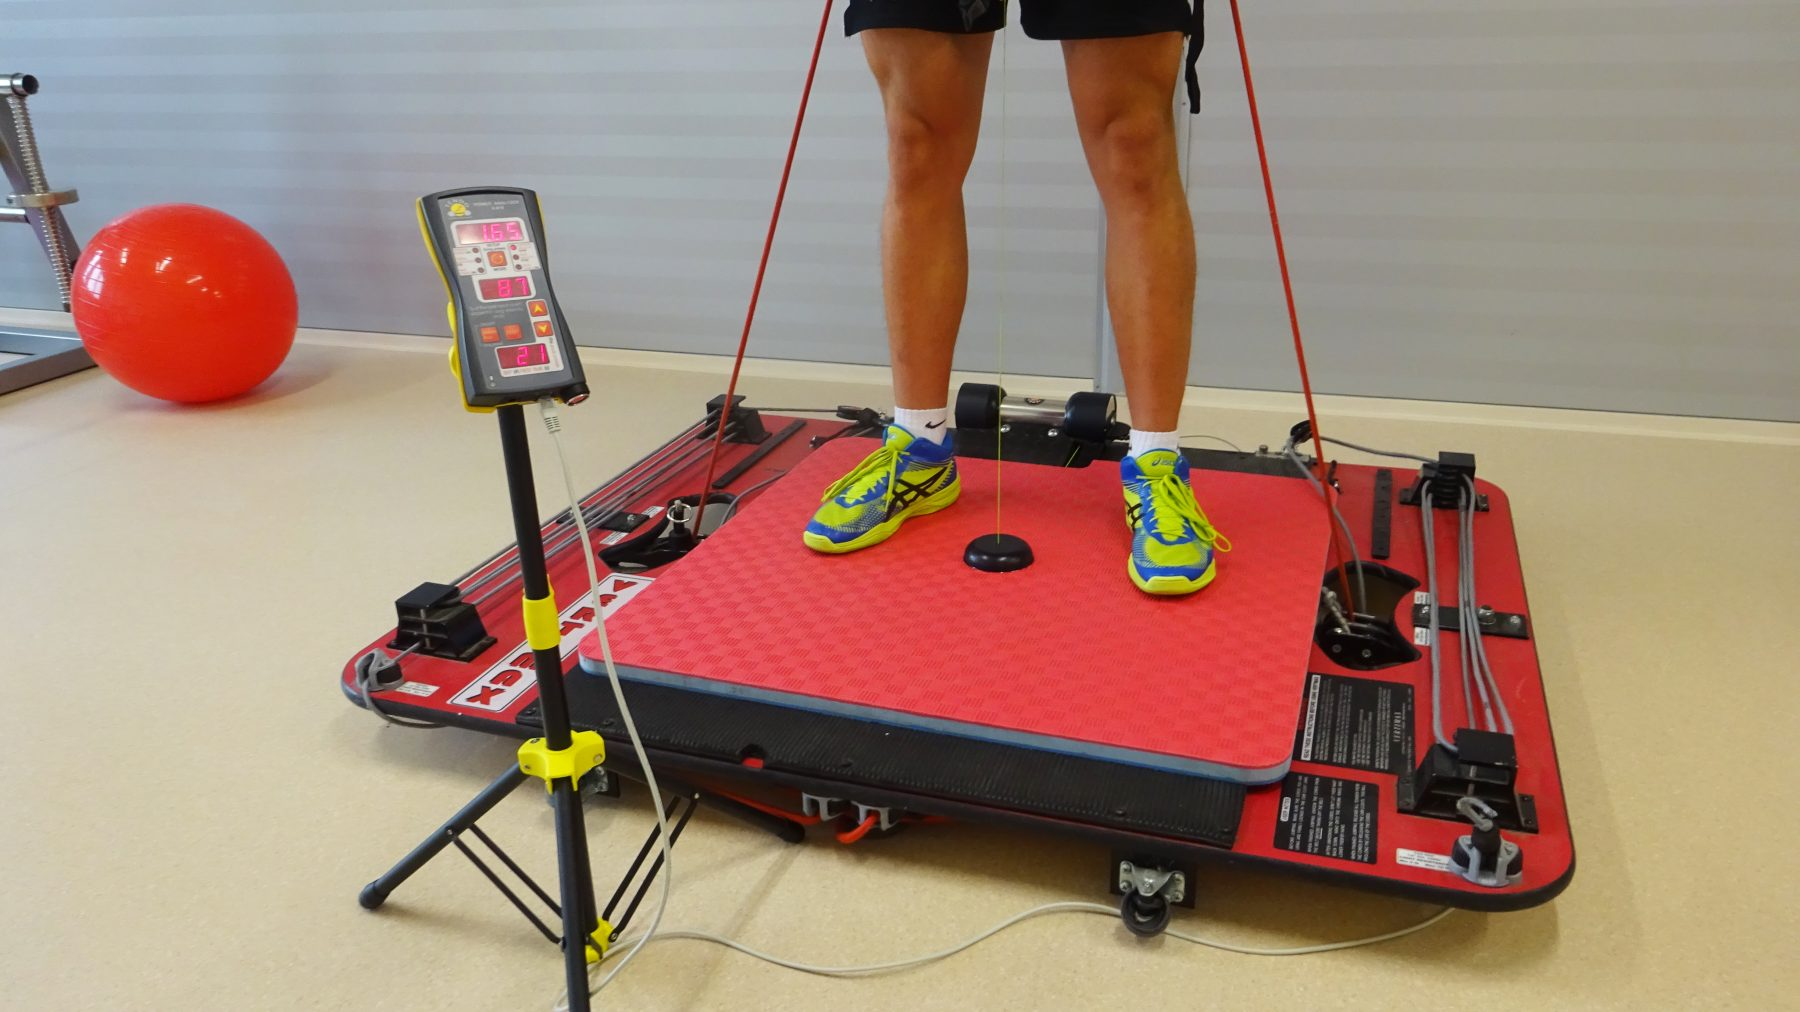 Athlete performing jumps with Vertimax. Measuring power and velocity of legs using Tendo Unit and Tendo JumpMat with detail On Tendo microcomputer unit